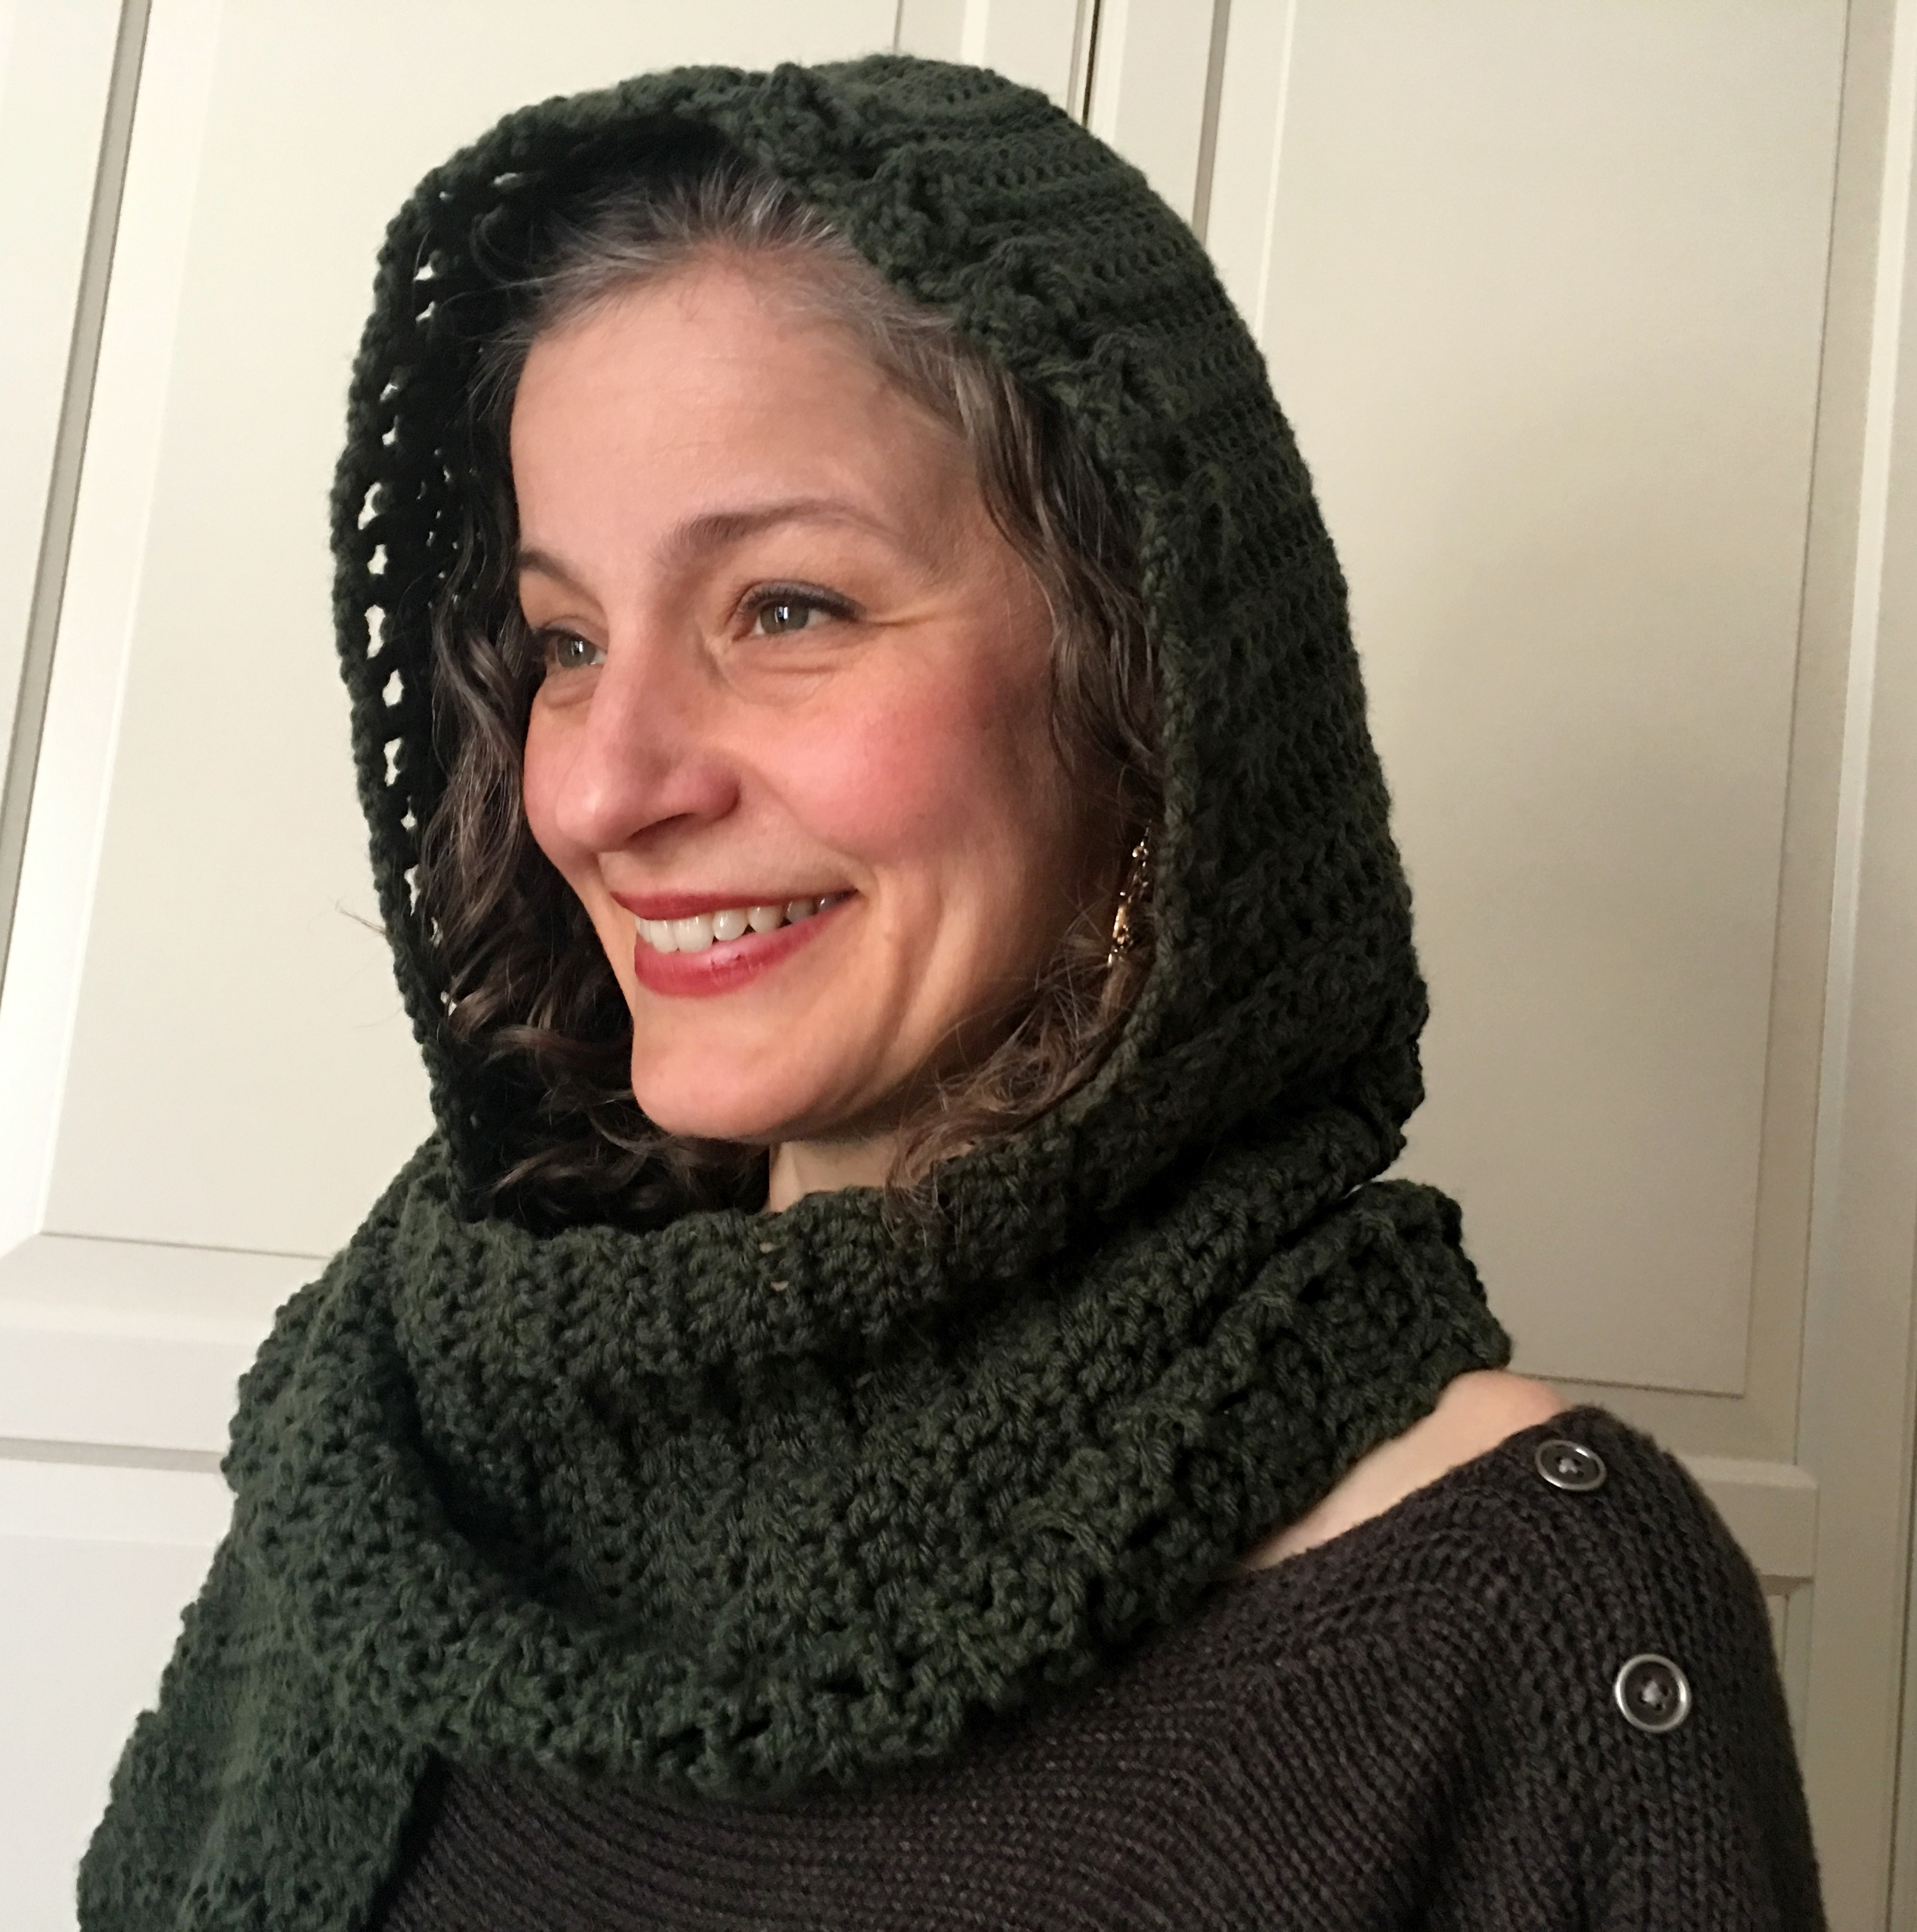 Crochet Hooded Scarf Pattern Pdf Heading Out Hooded Scarf